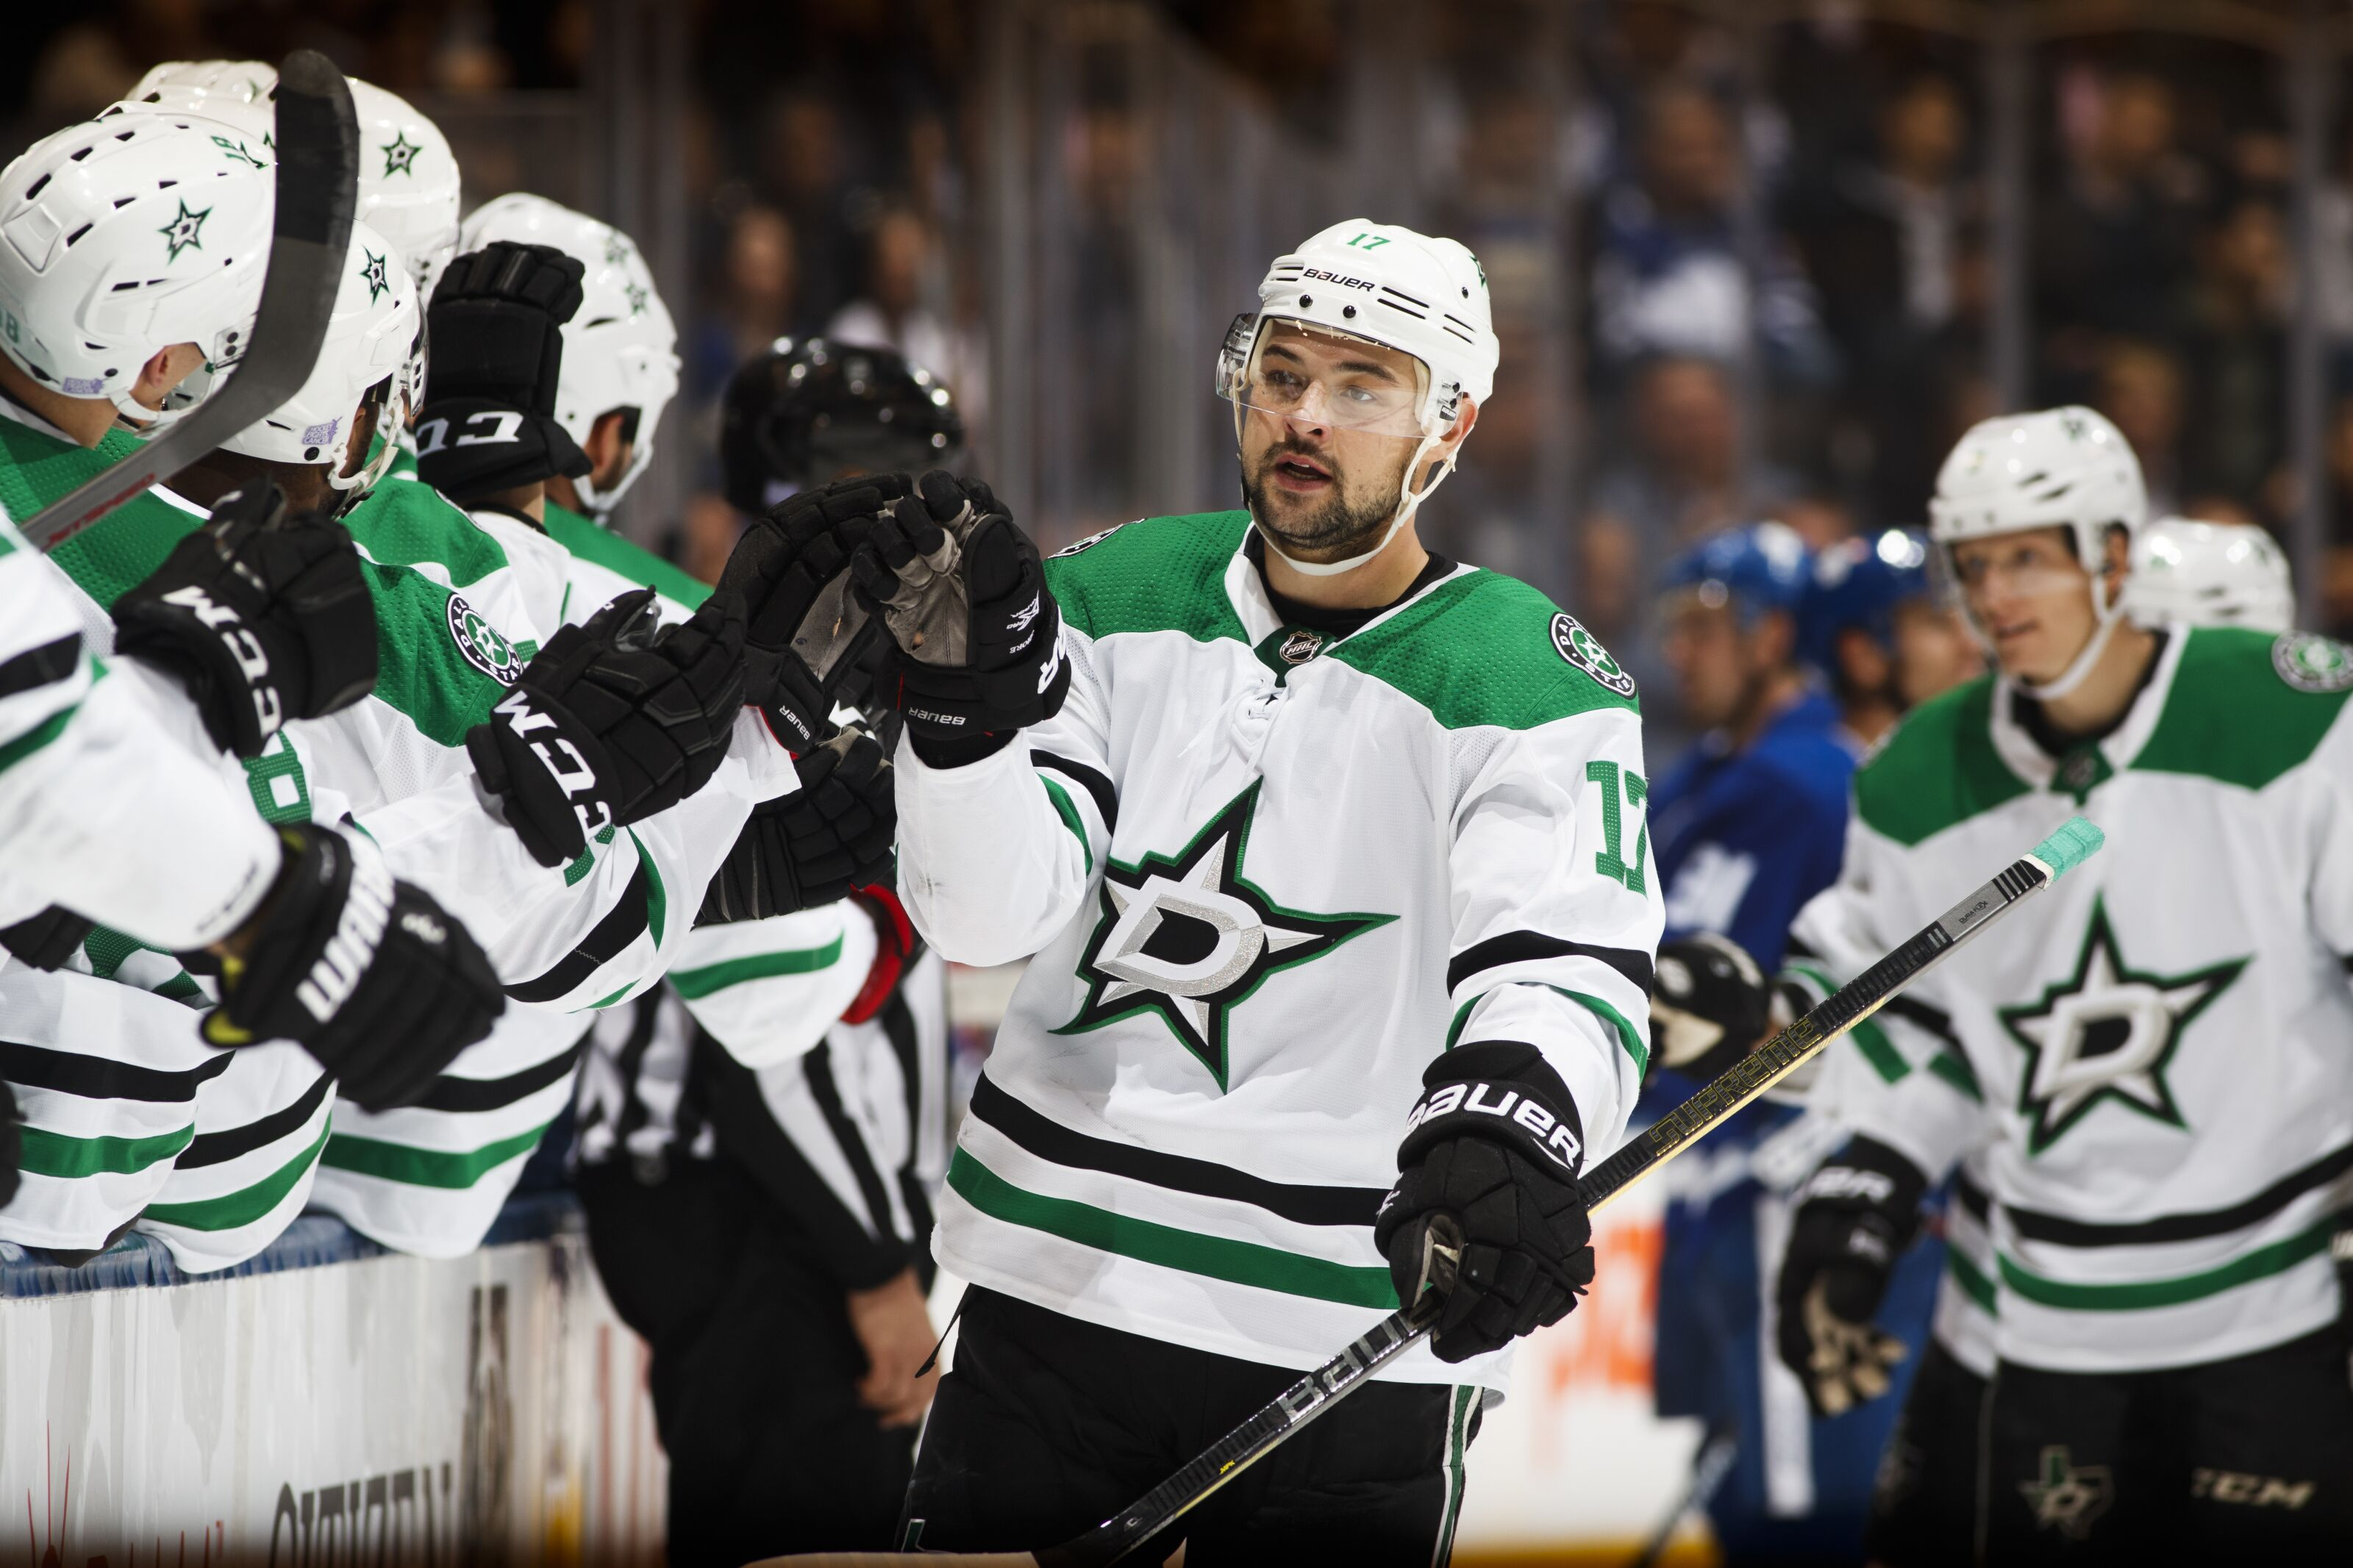 Dallas Stars: What Devin Shore's Absence From Lineup Means For Stars